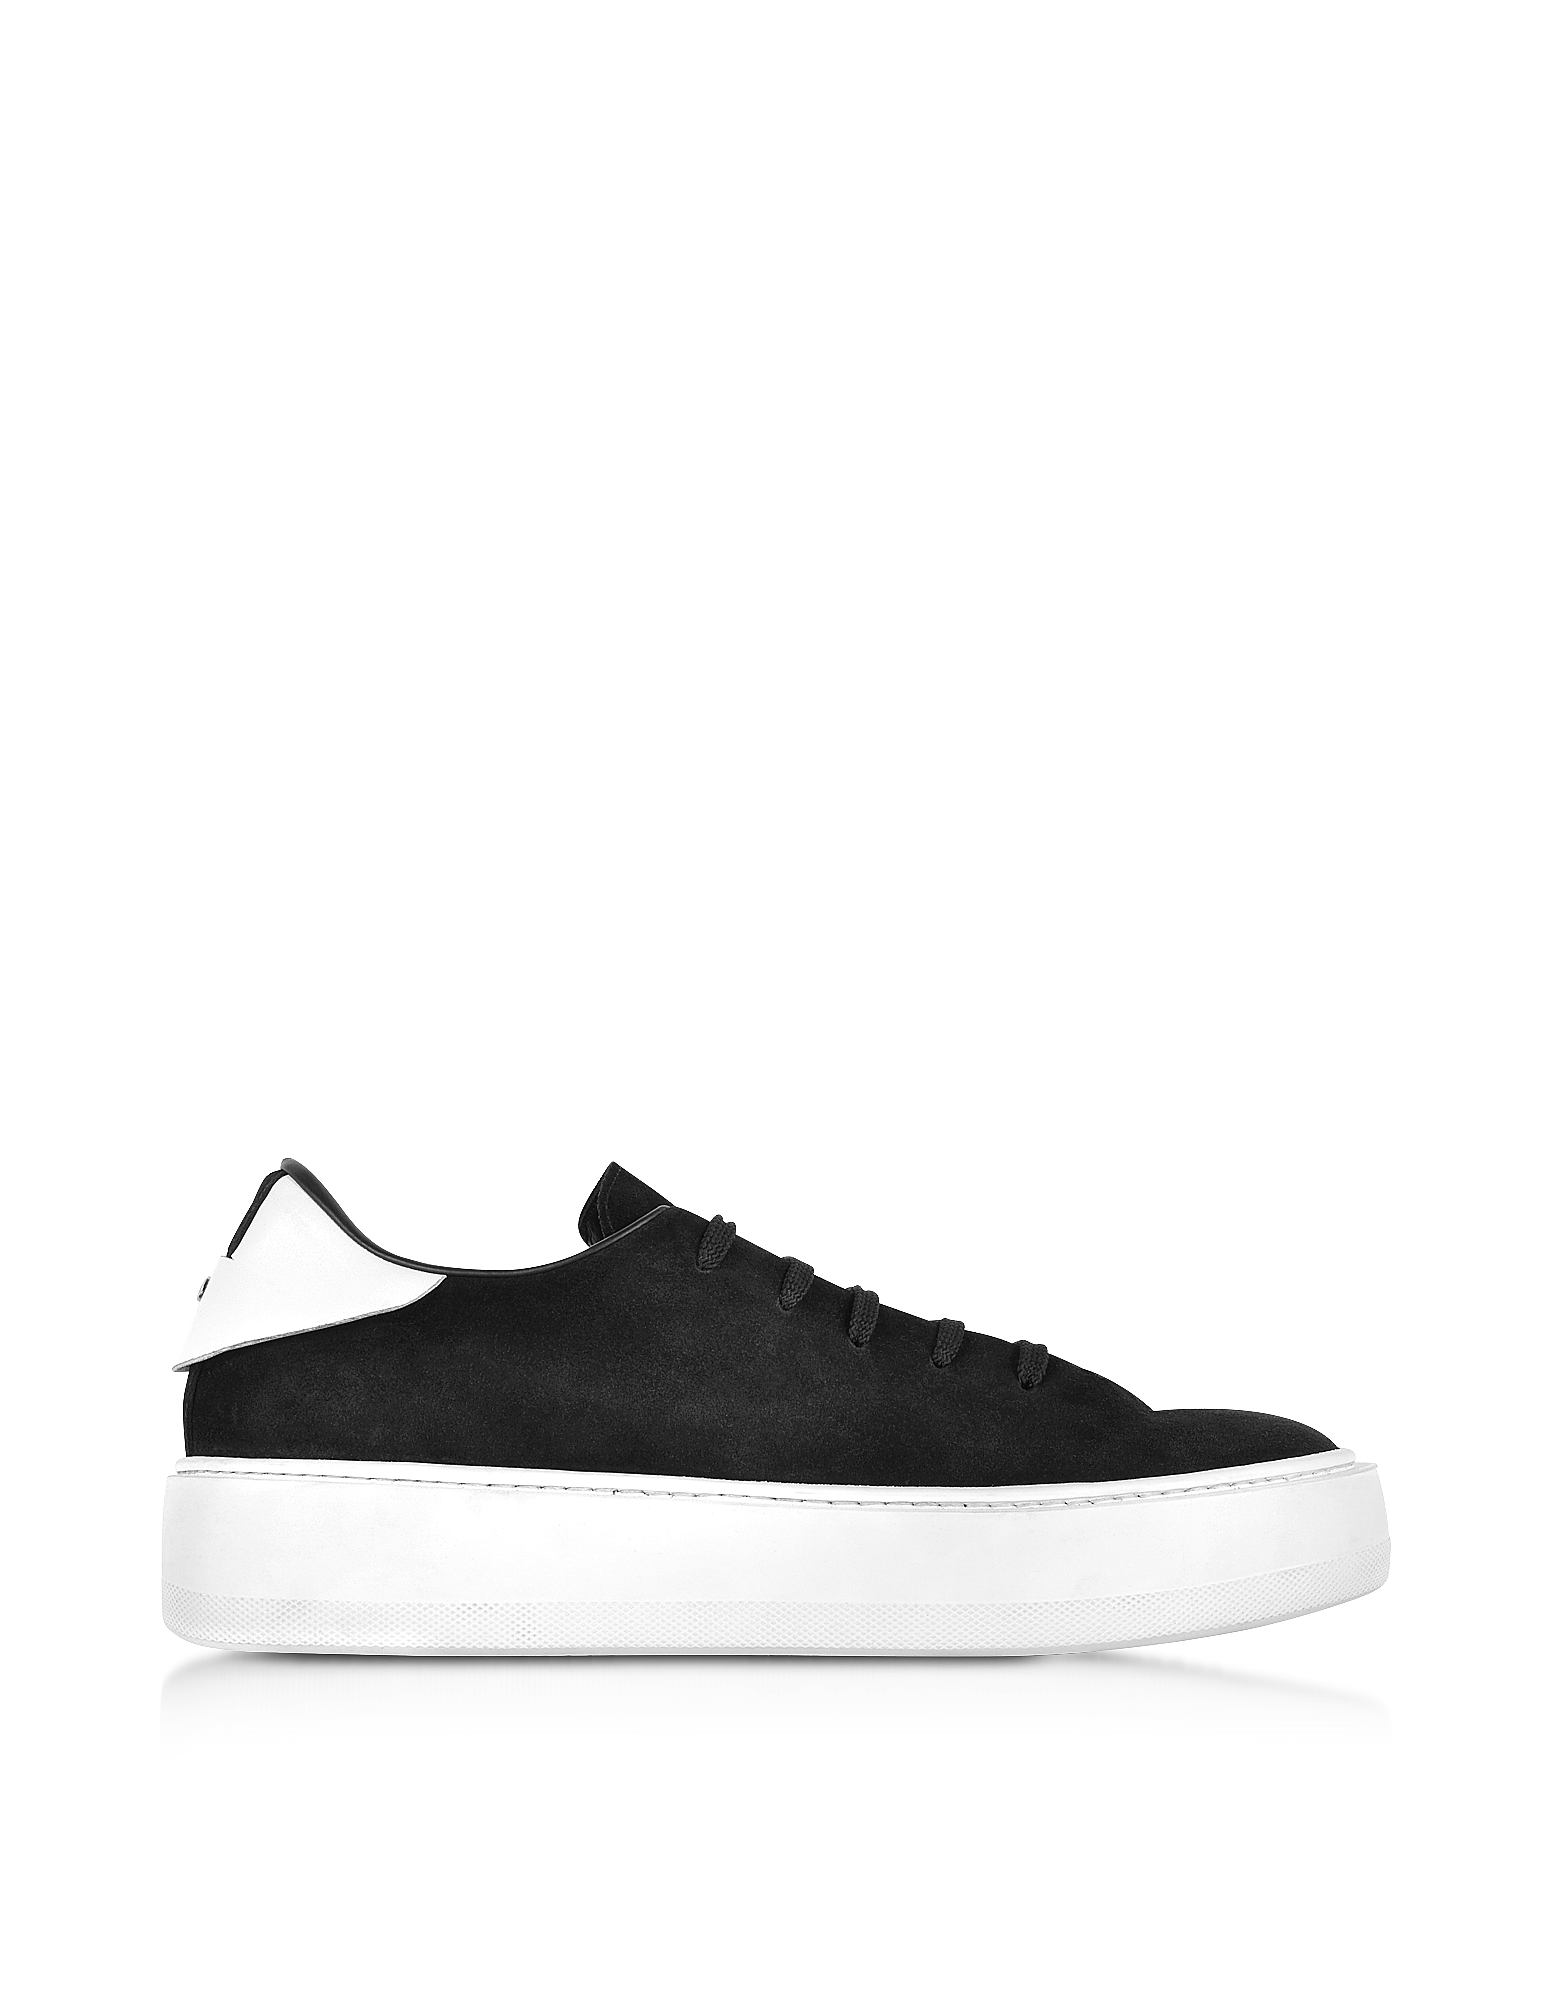 Cesare Paciotti Black Suede Low Top Sneakers w/White Rubber Sole